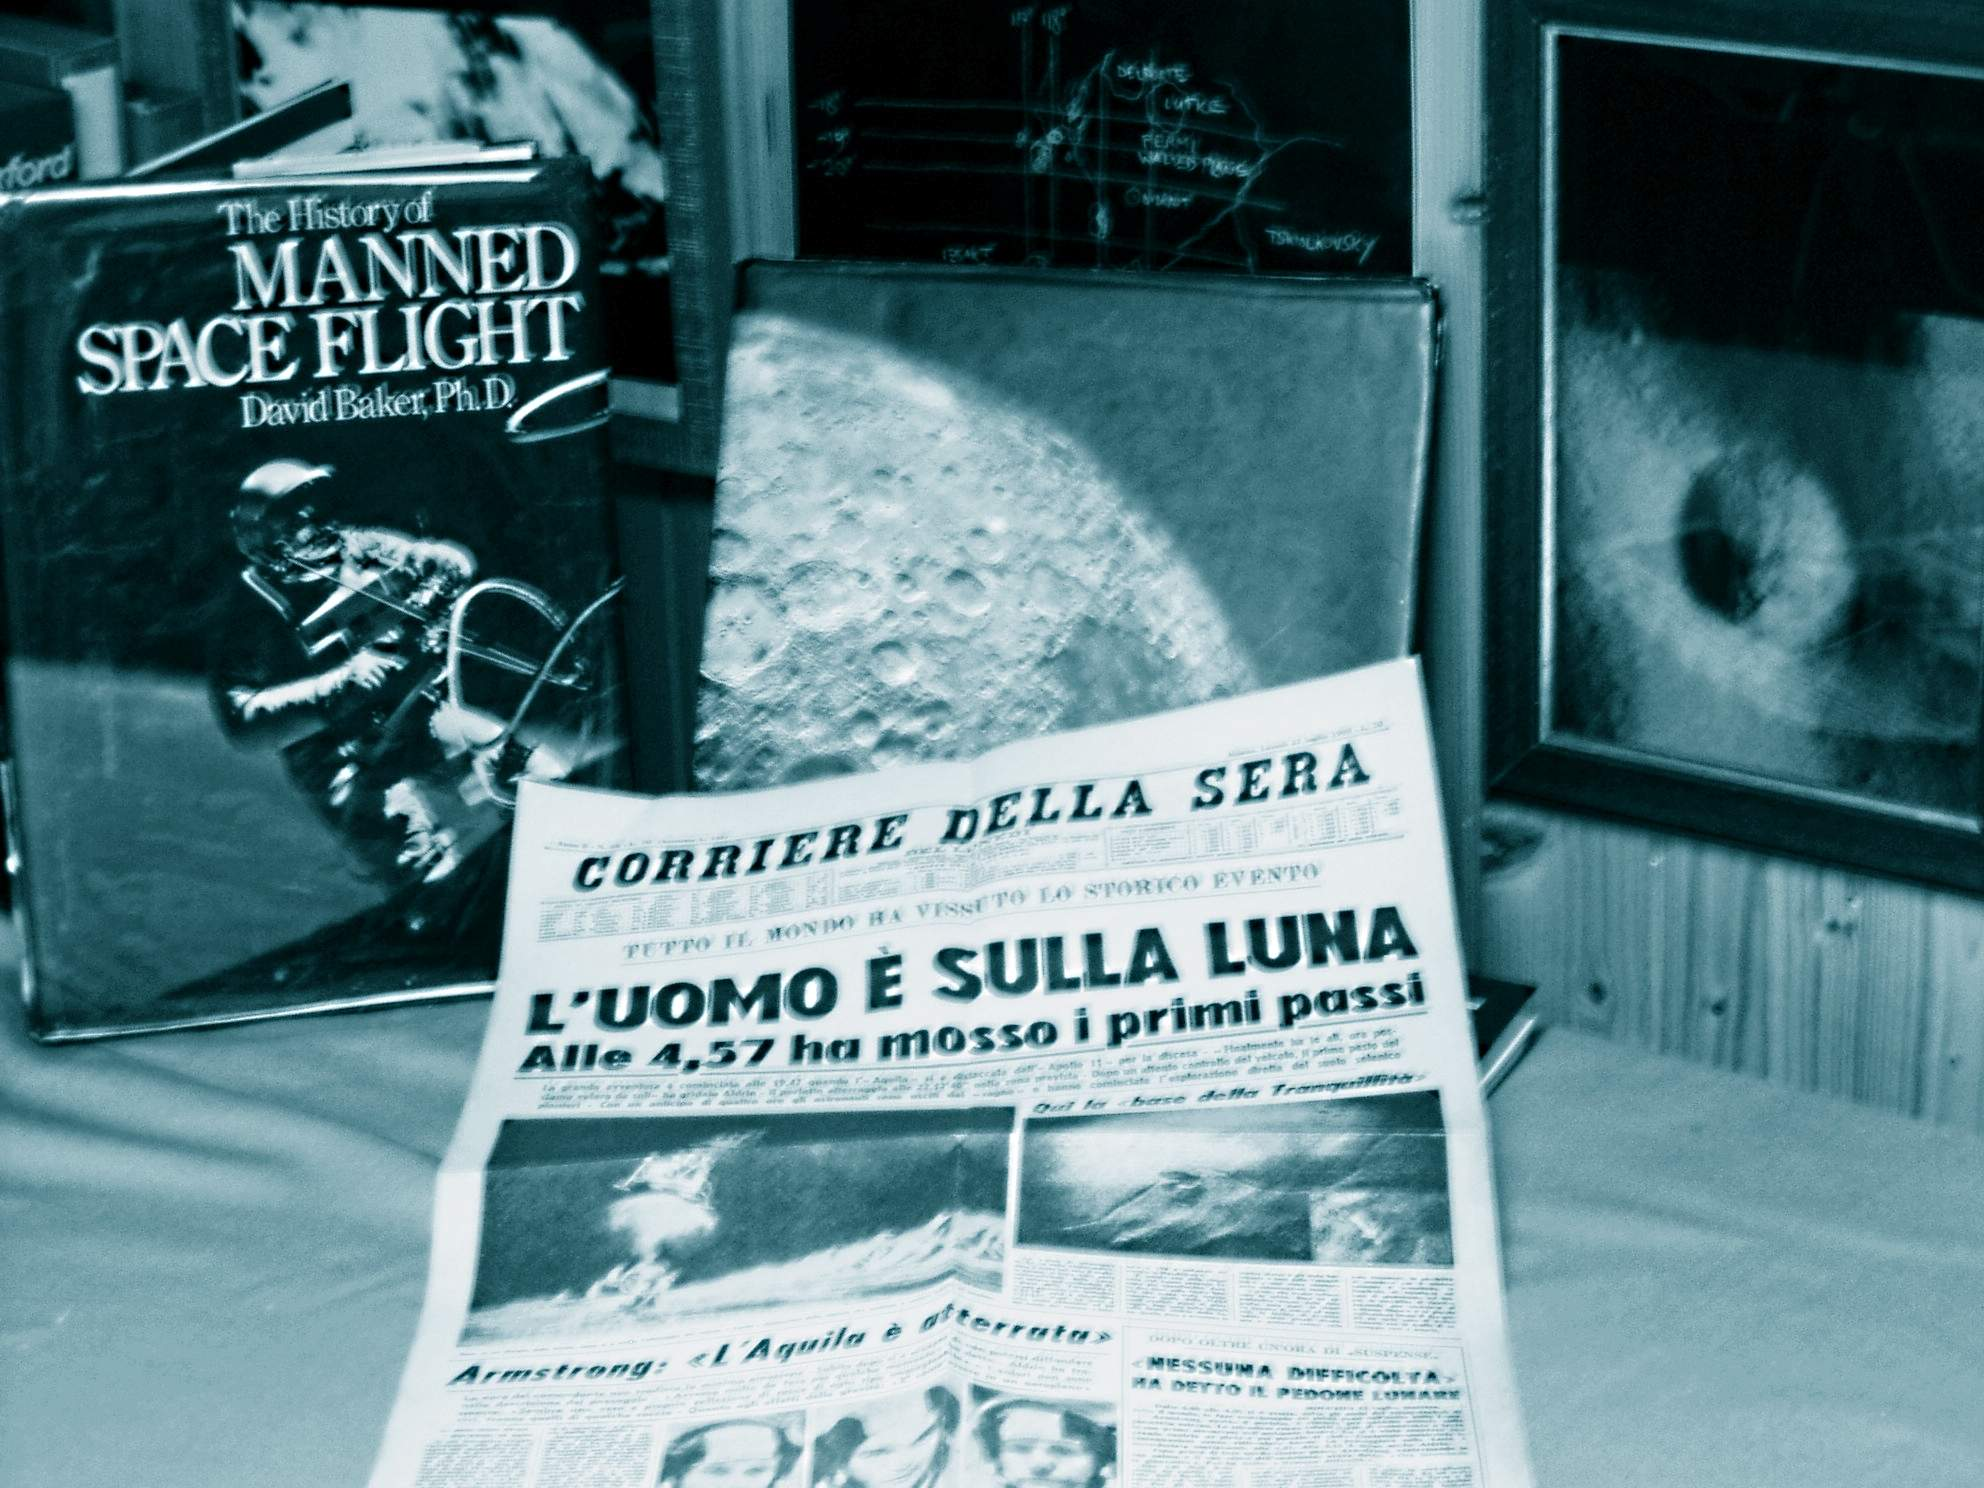 Corriere della Sera, July 21st, 1969, celebration of the first lunar landing, by Apollo 11 crew